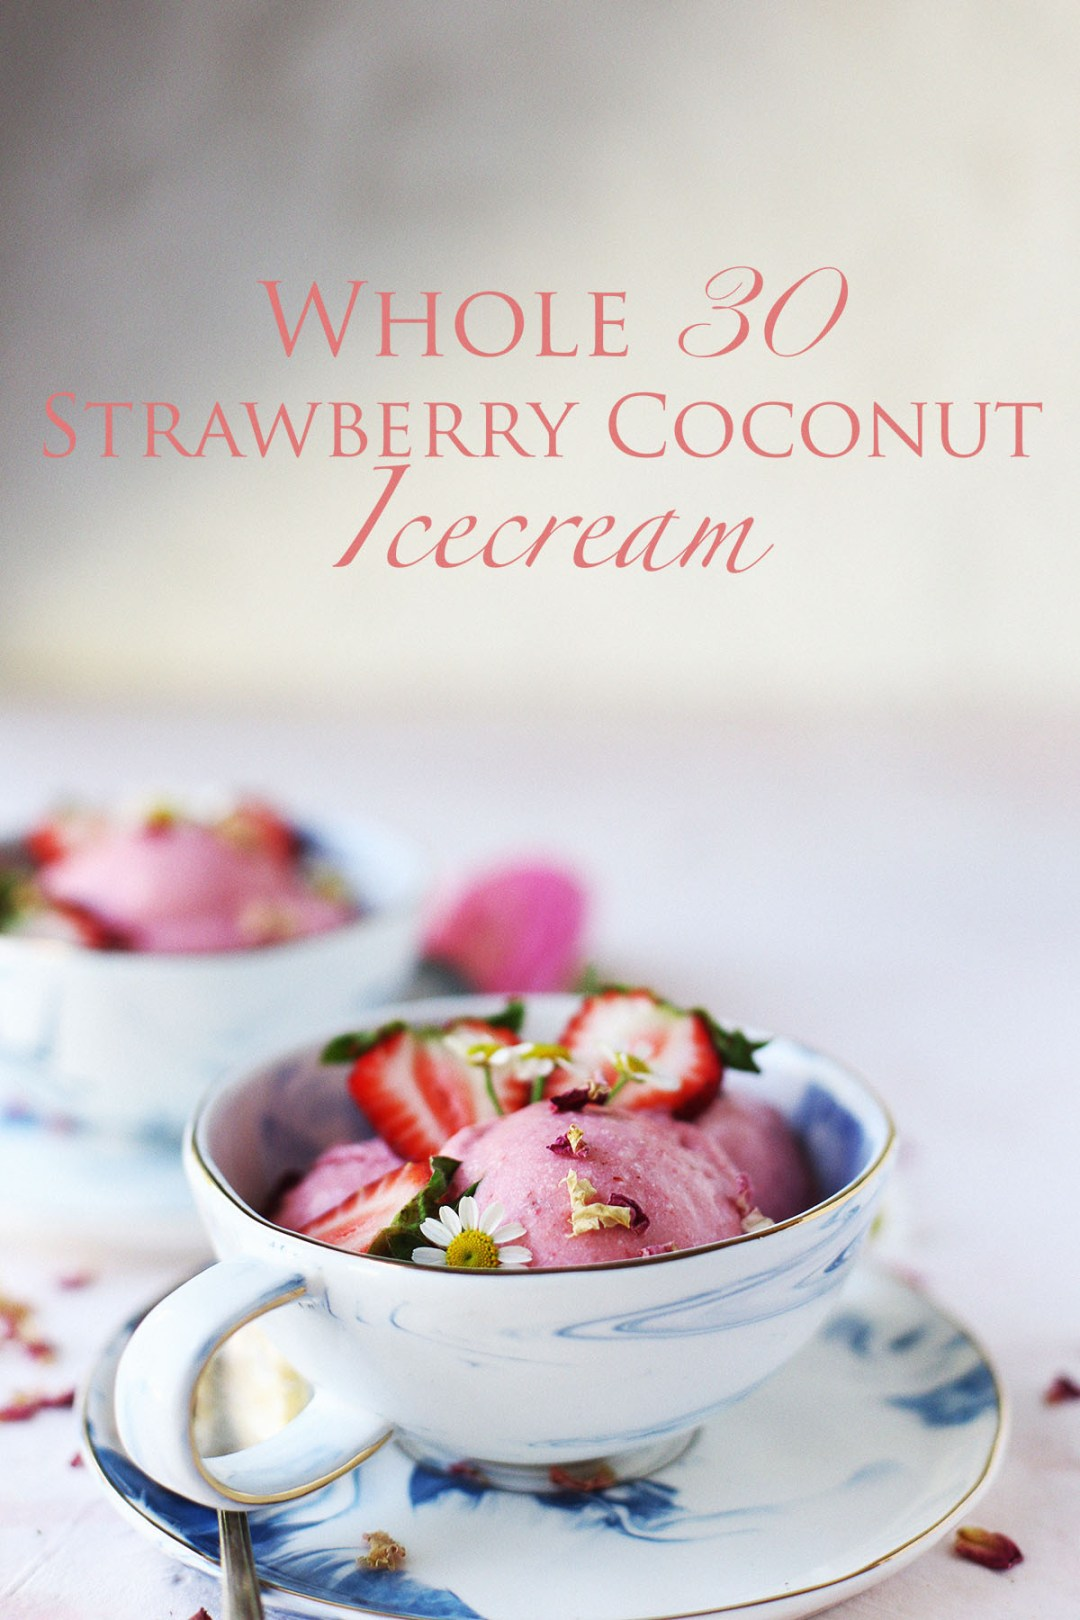 Whole 30 Strawberry Coconut Ice Cream